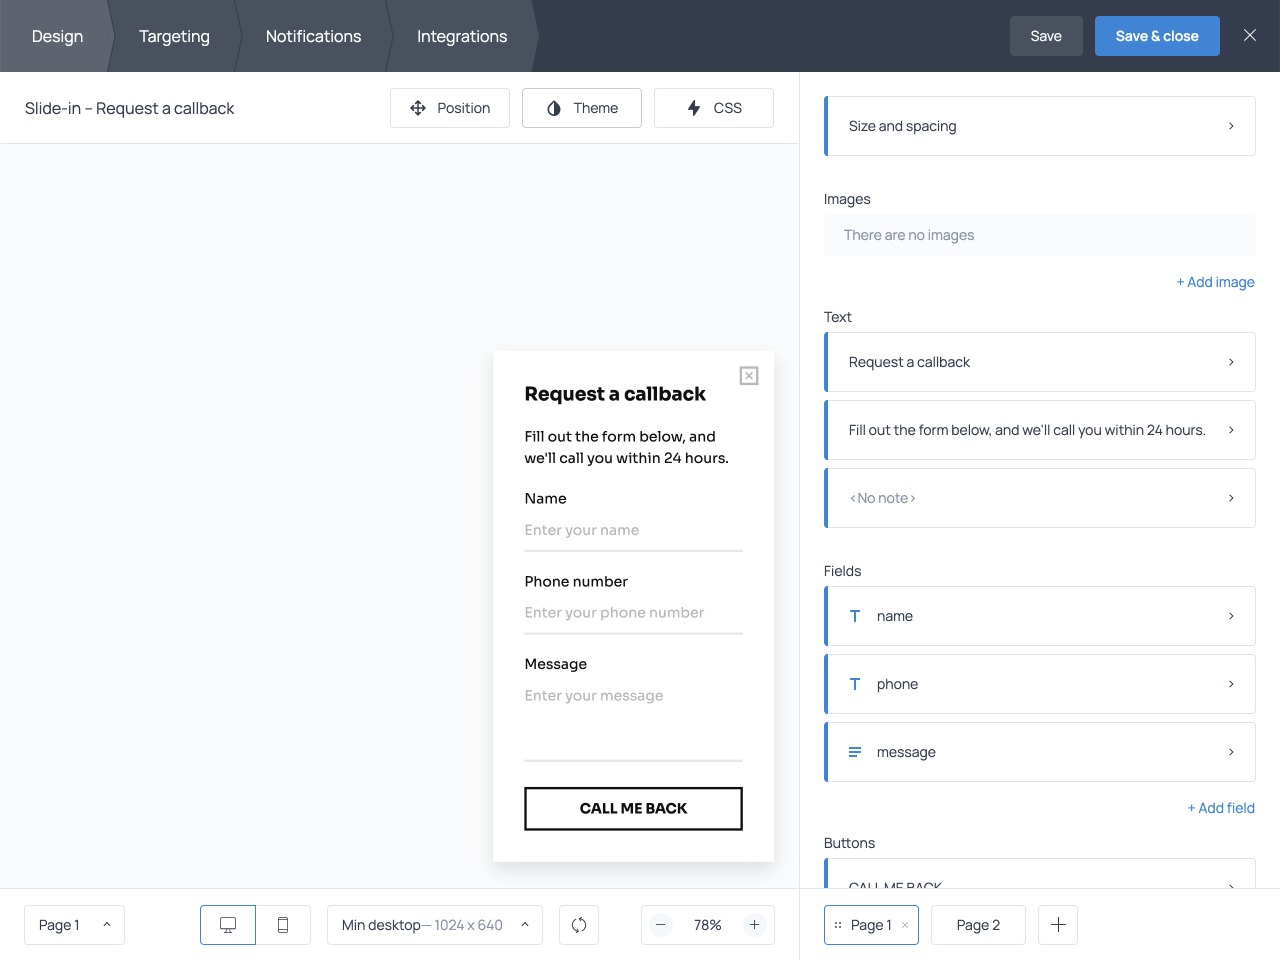 How to create a callback request form in Getsitecontrol